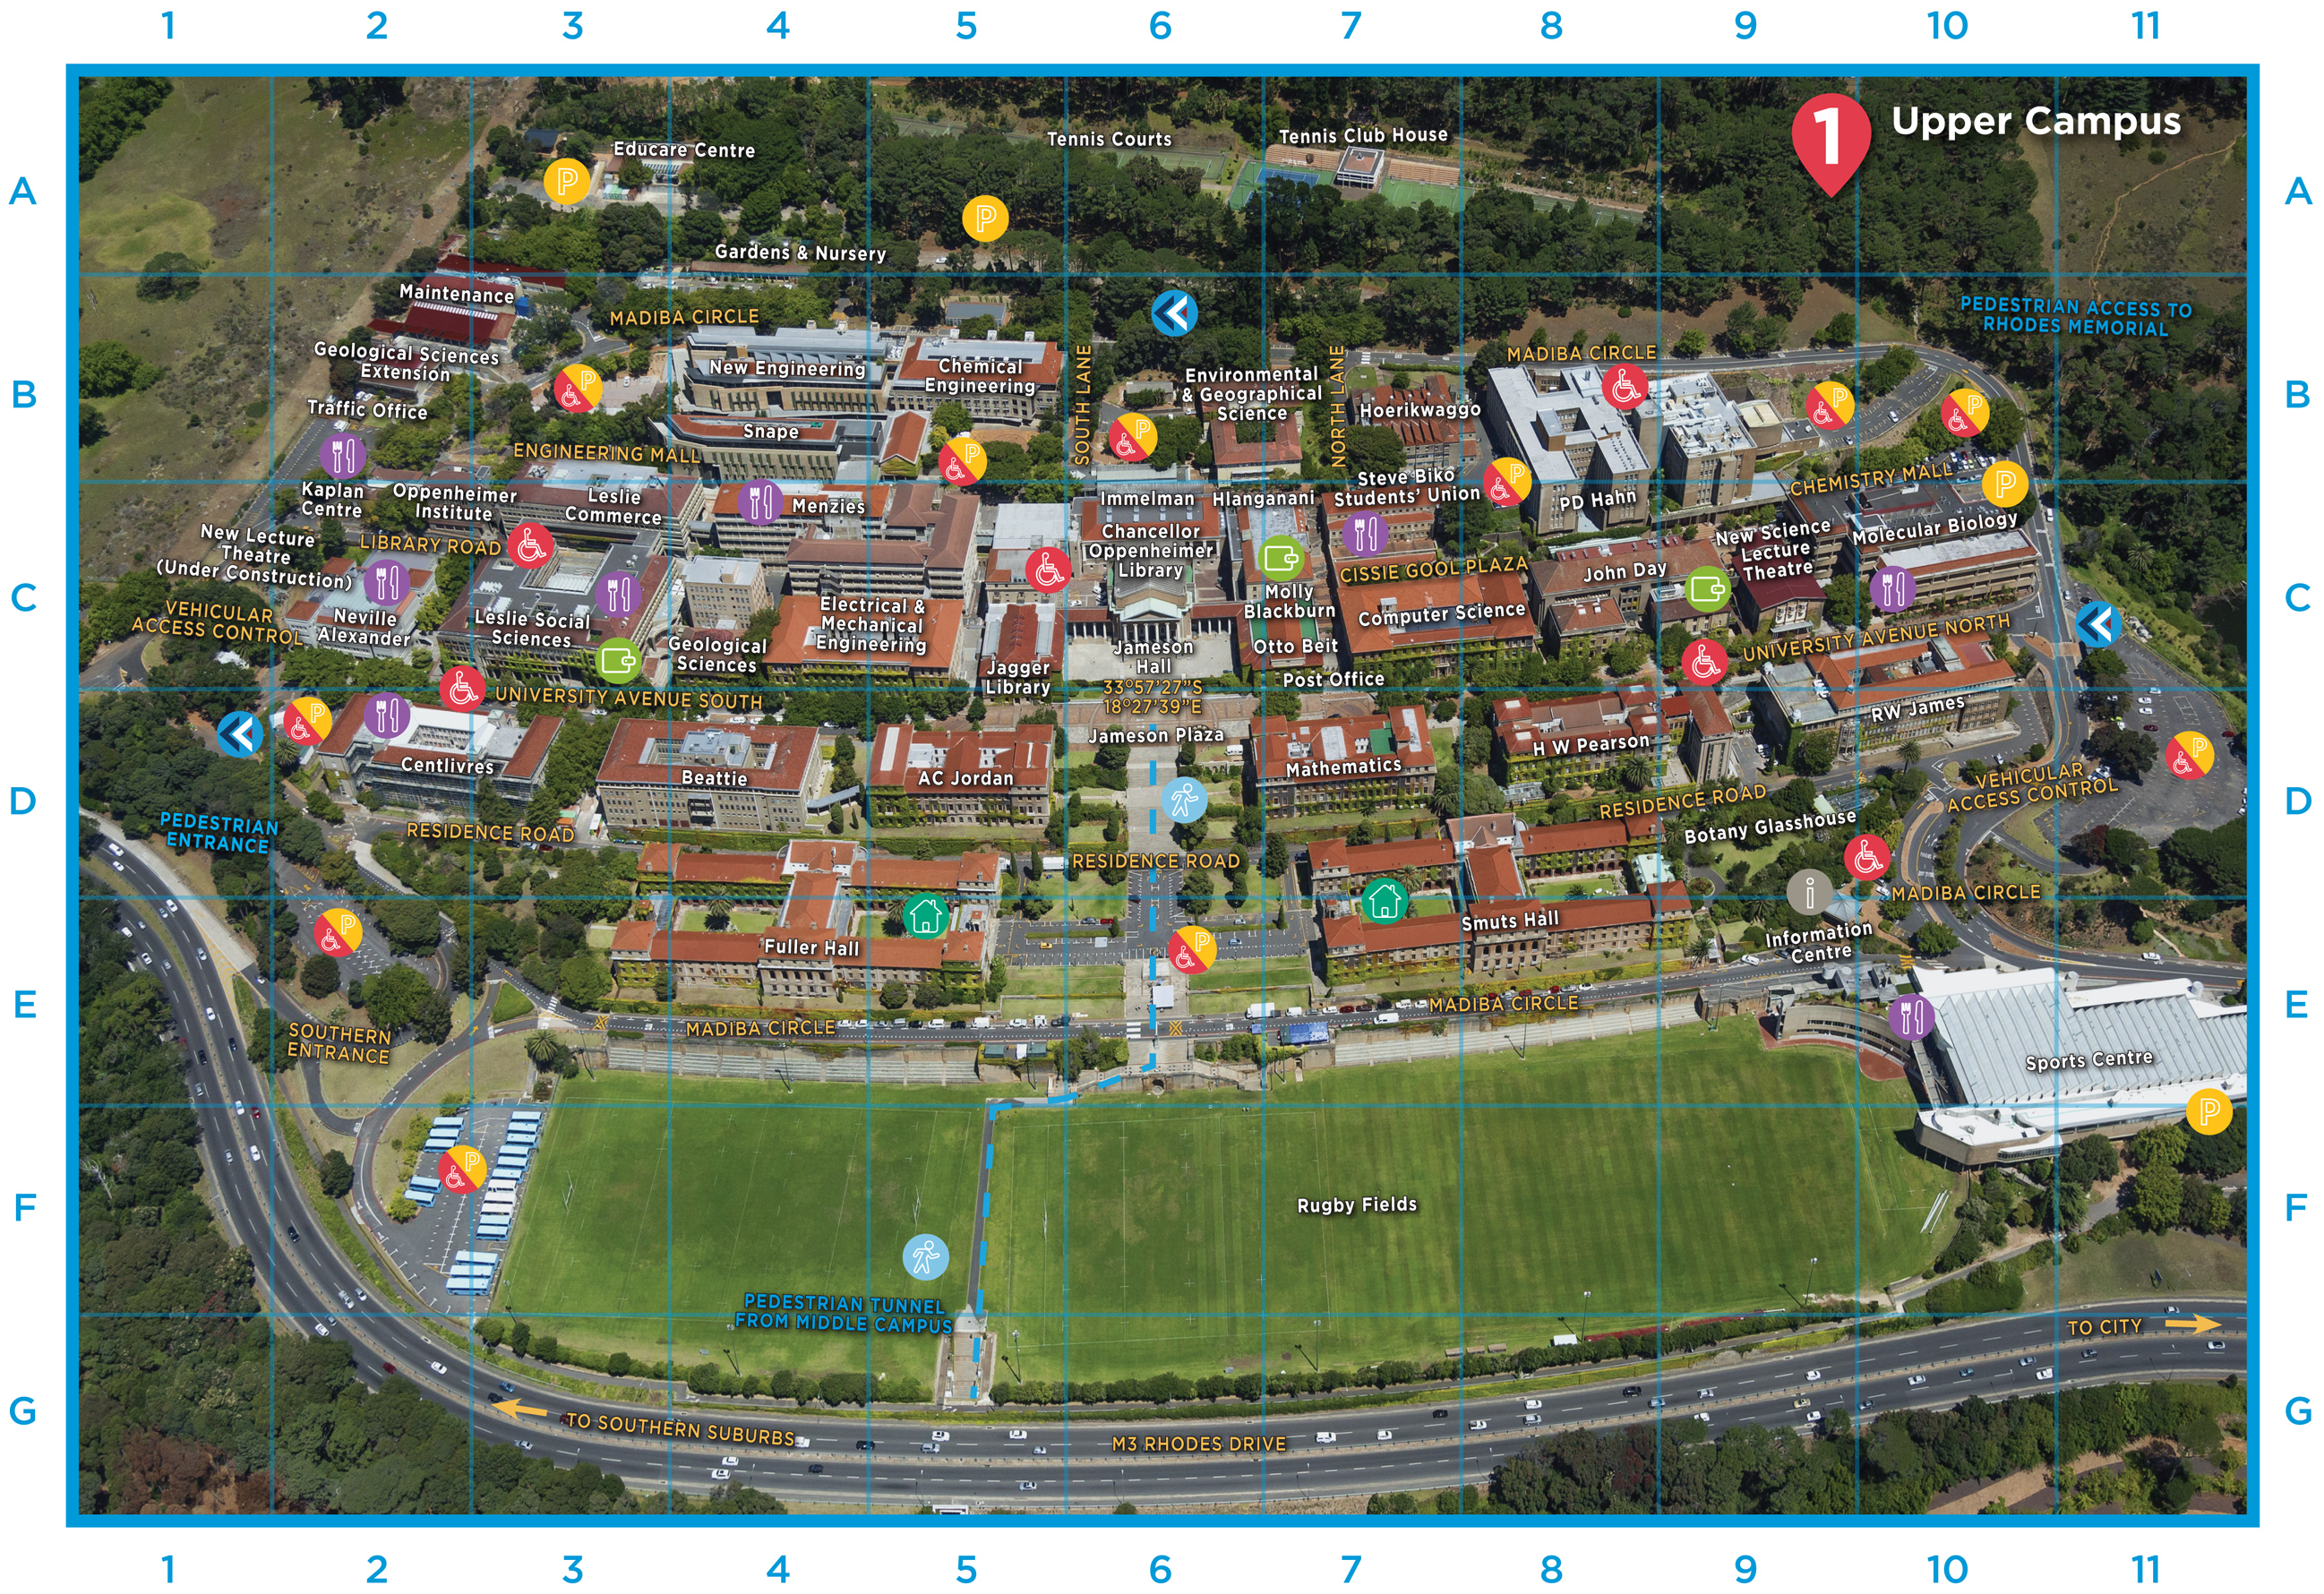 Campus Maps University Of Cape Town - Us open tennis parking map